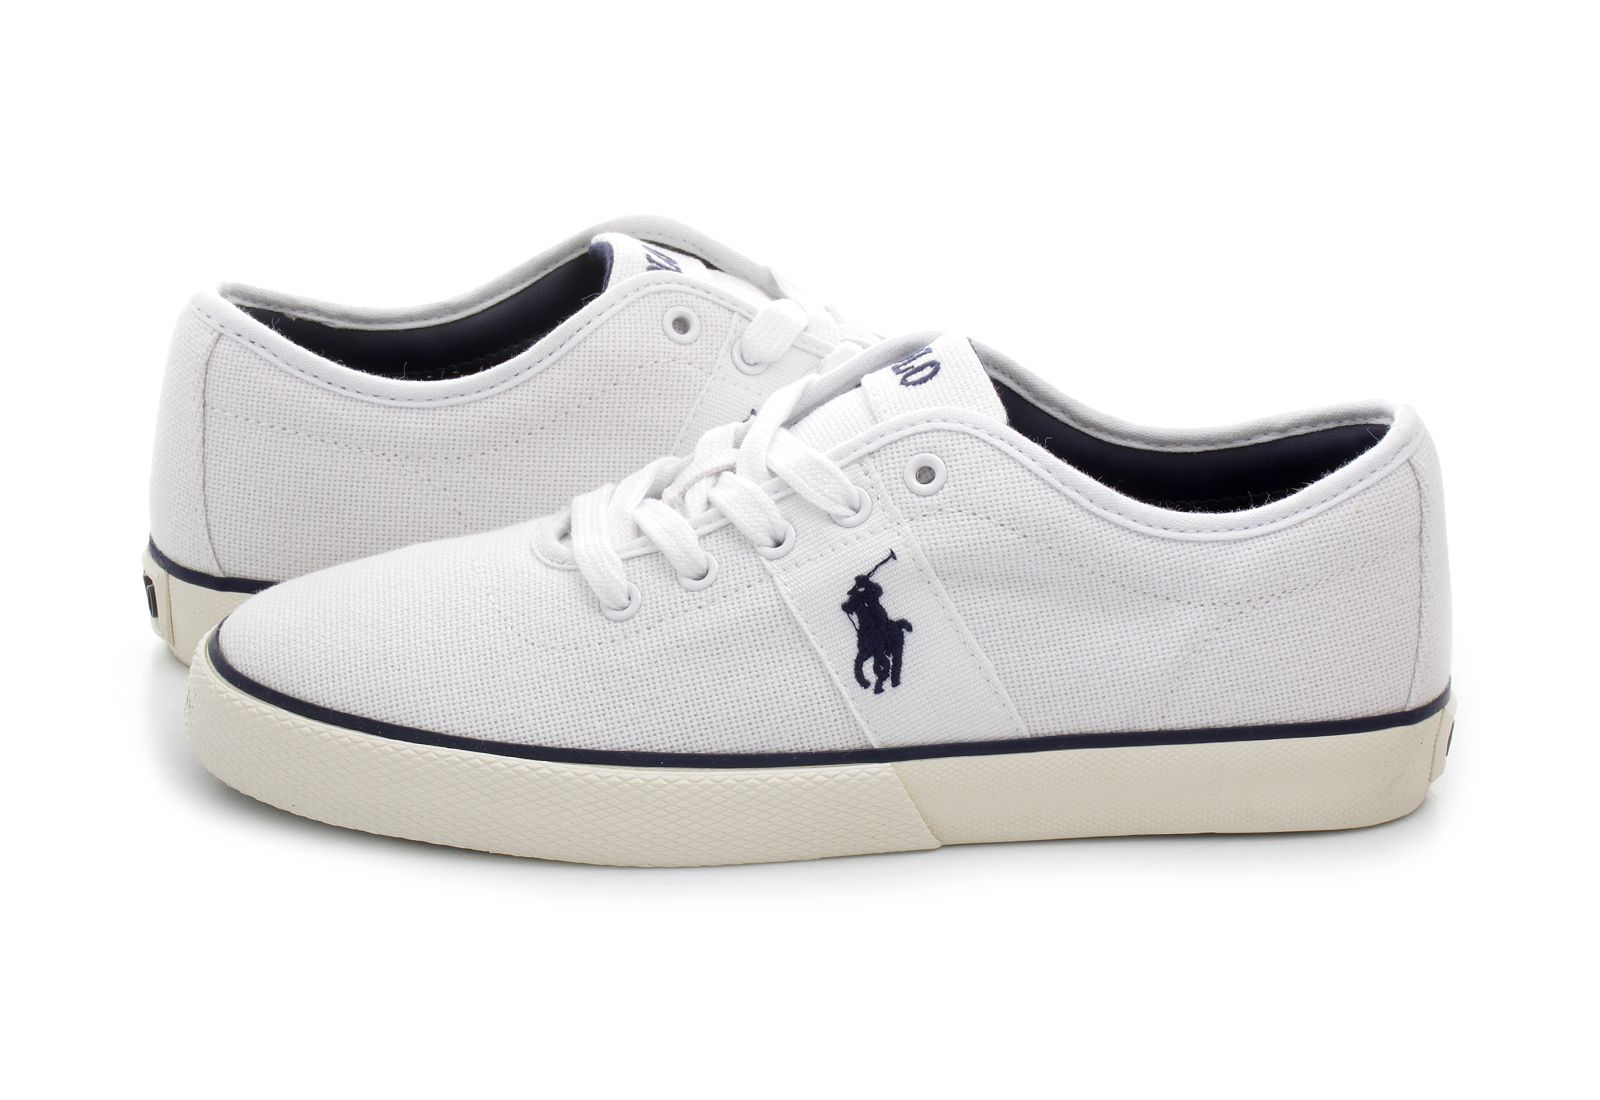 Polo Ralph Lauren Cipő - Halford-ne - 816641861006 - Office Shoes ... 1573d244dc